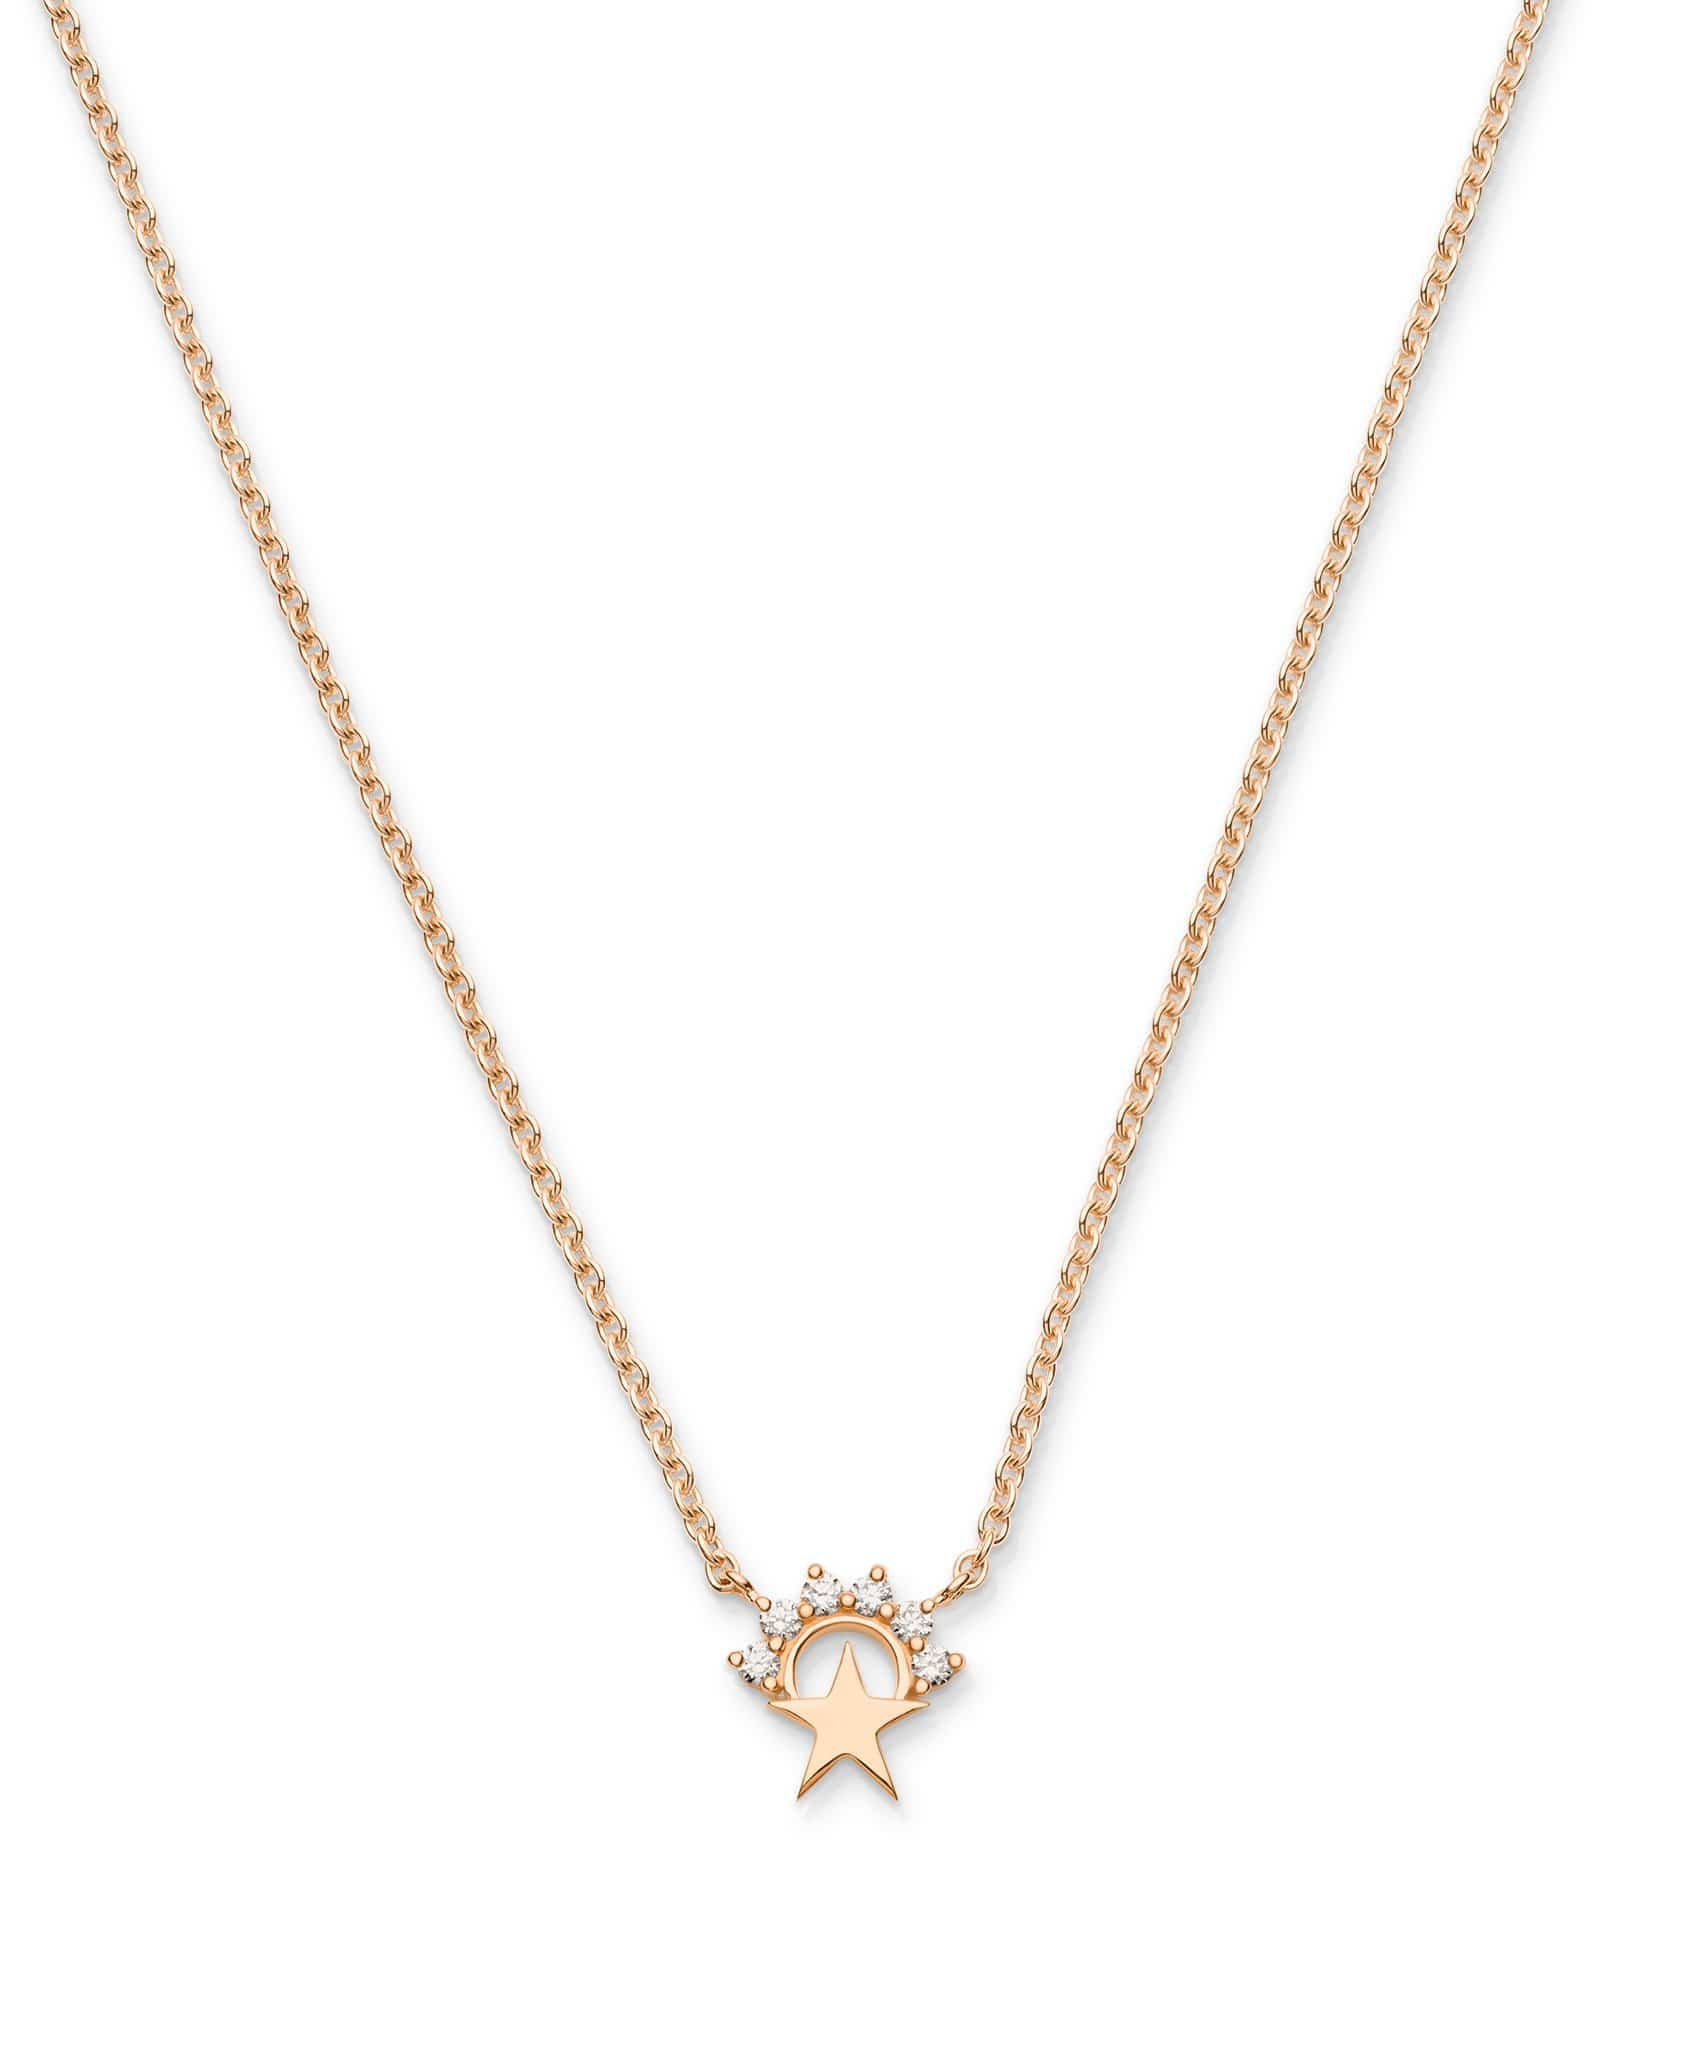 Mystic Necklace Small Star Pendant -